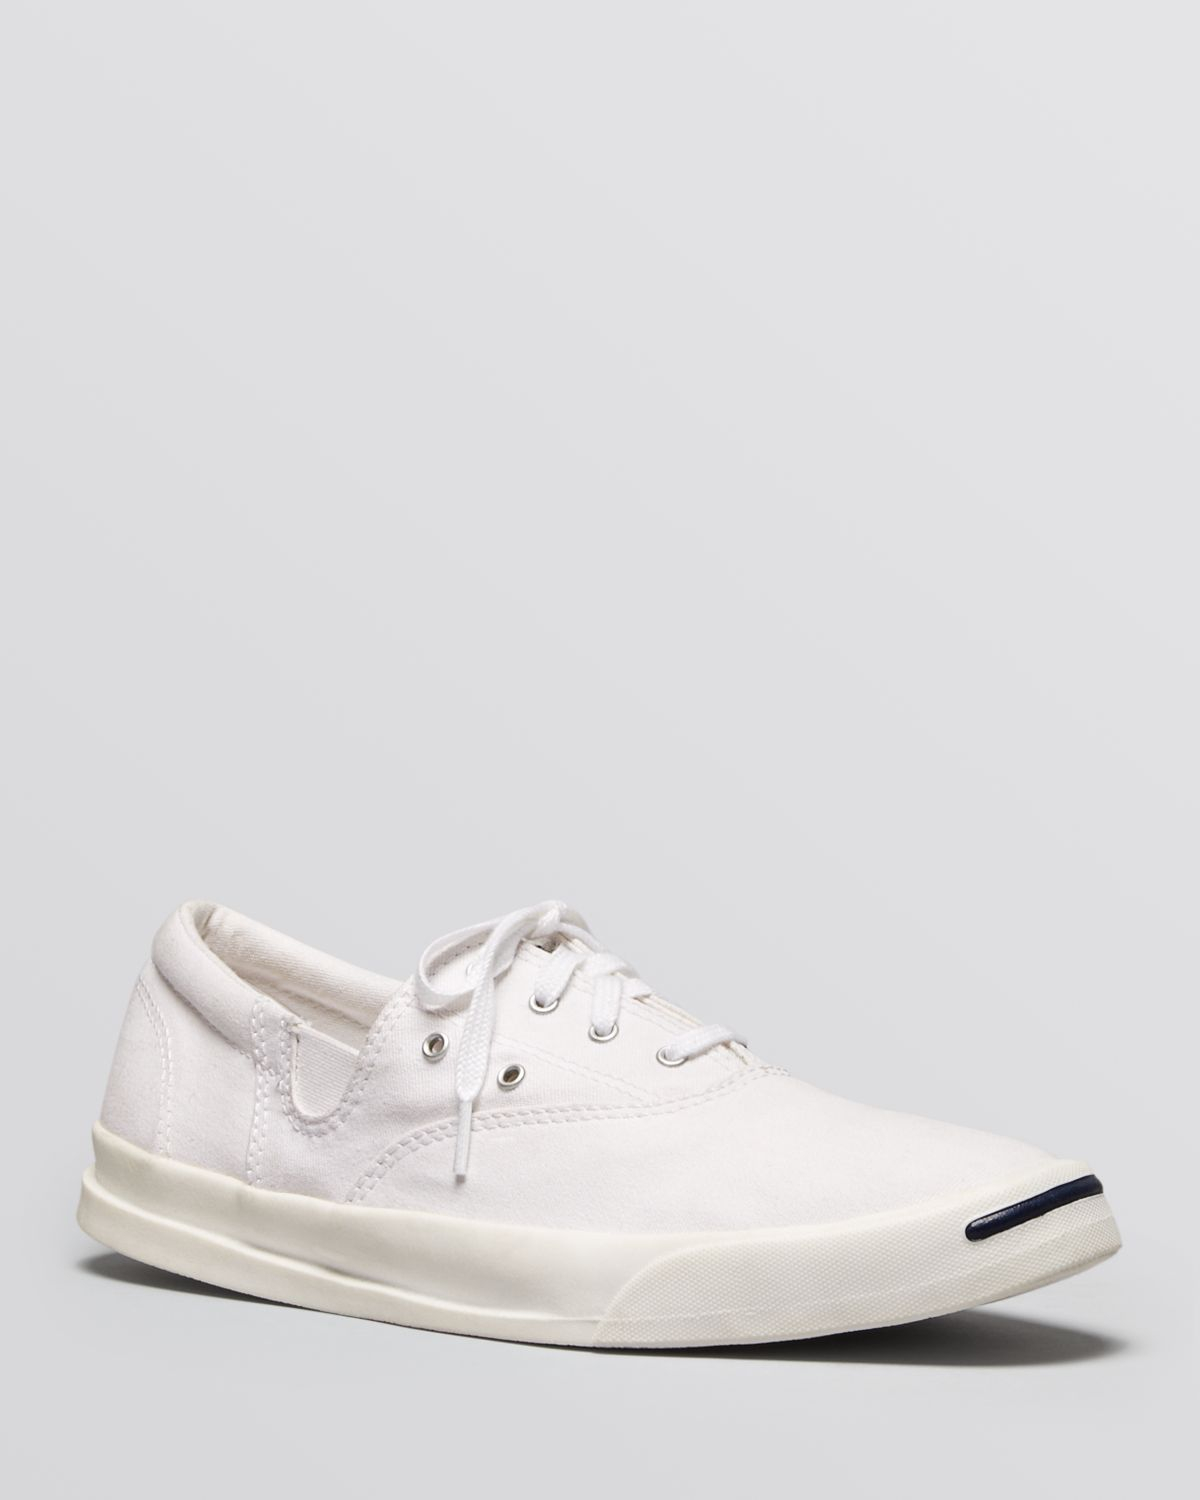 f6503906eff1b1 Lyst - Converse Jack Purcell Jeffrey Cvo Sneakers in White for Men